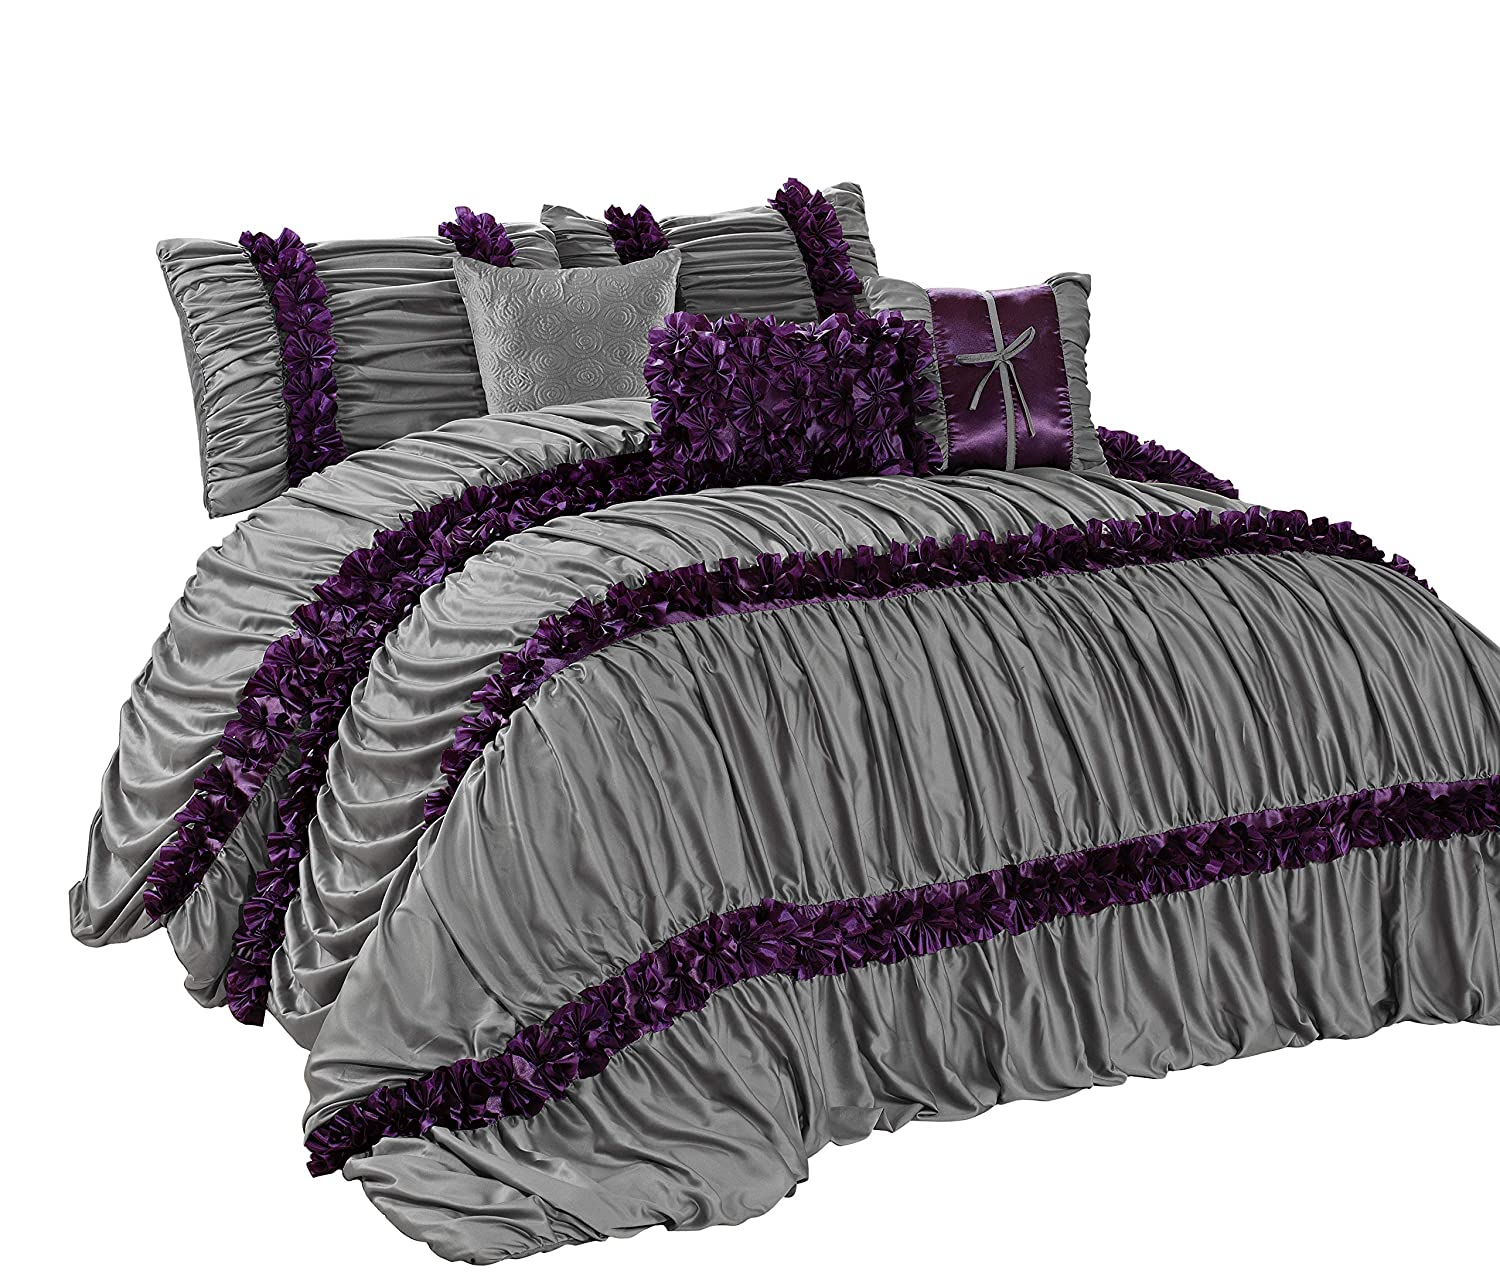 HIG 7 Piece Comforter Set King-Gray Damask Satin Several Ruffles-CARALINA Bed in A Bag King Size-Soft, Hypoallergenic,Fade Resistant-1 Comforter,2 Shams,3 Decorative Pillows,1 Bedskirt